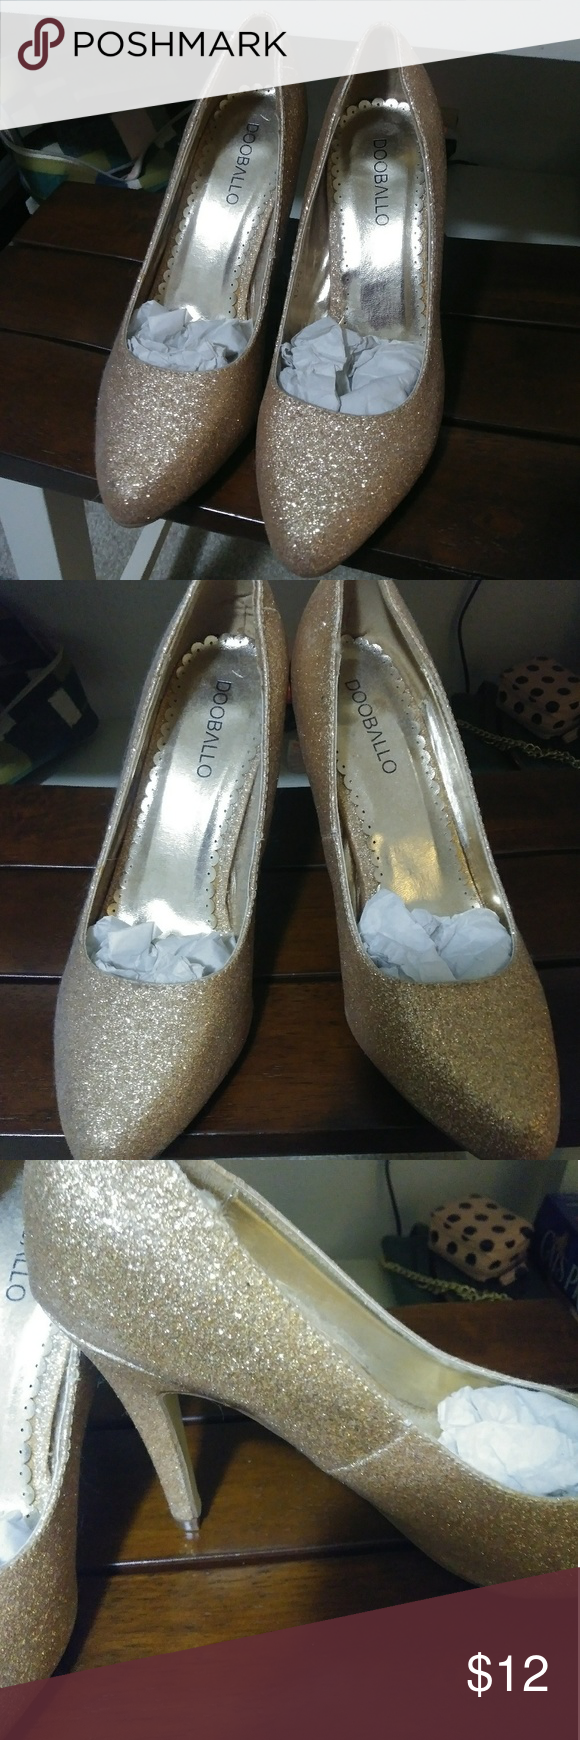 2d50171ea4b Gold glitter heels, size 8.5 These shoes are extra sparkly glitter ...